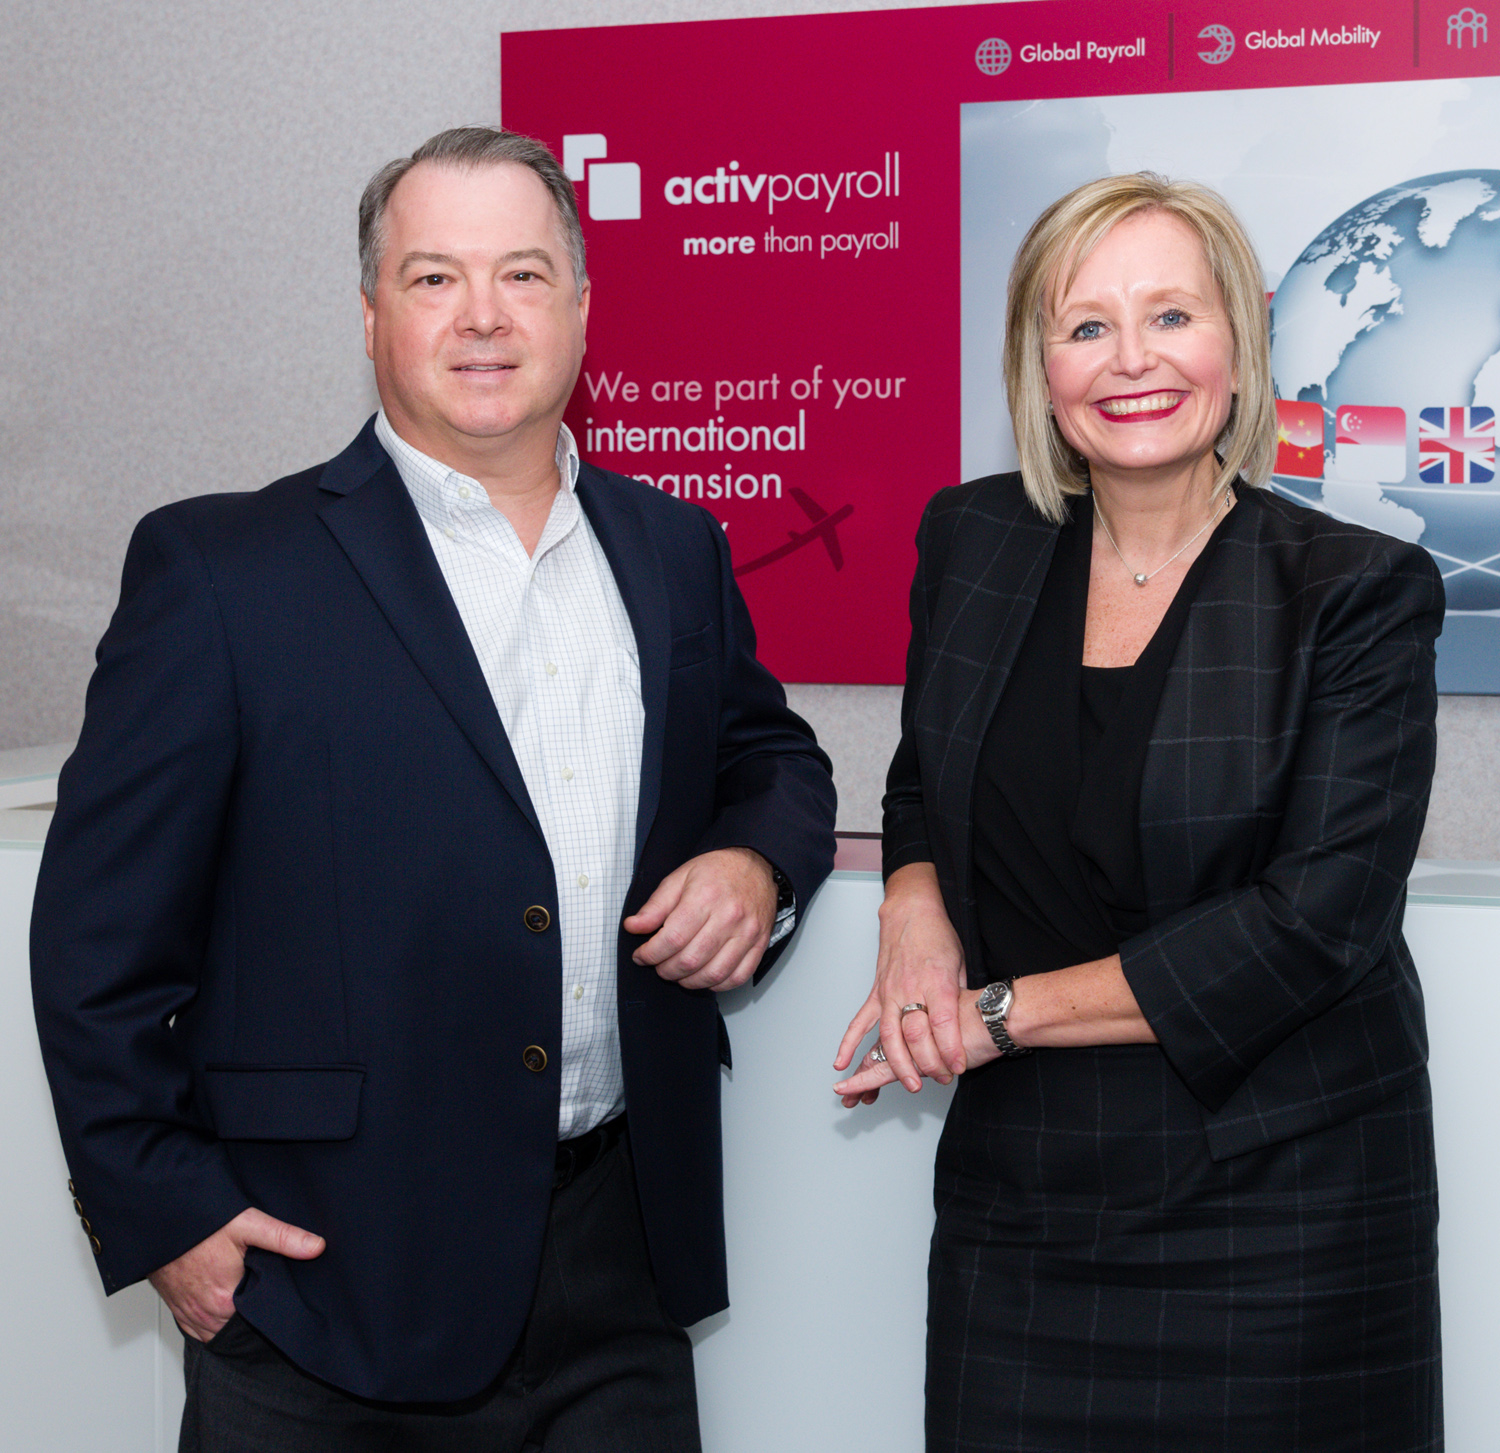 activpayroll continues global expansion with additional USA office